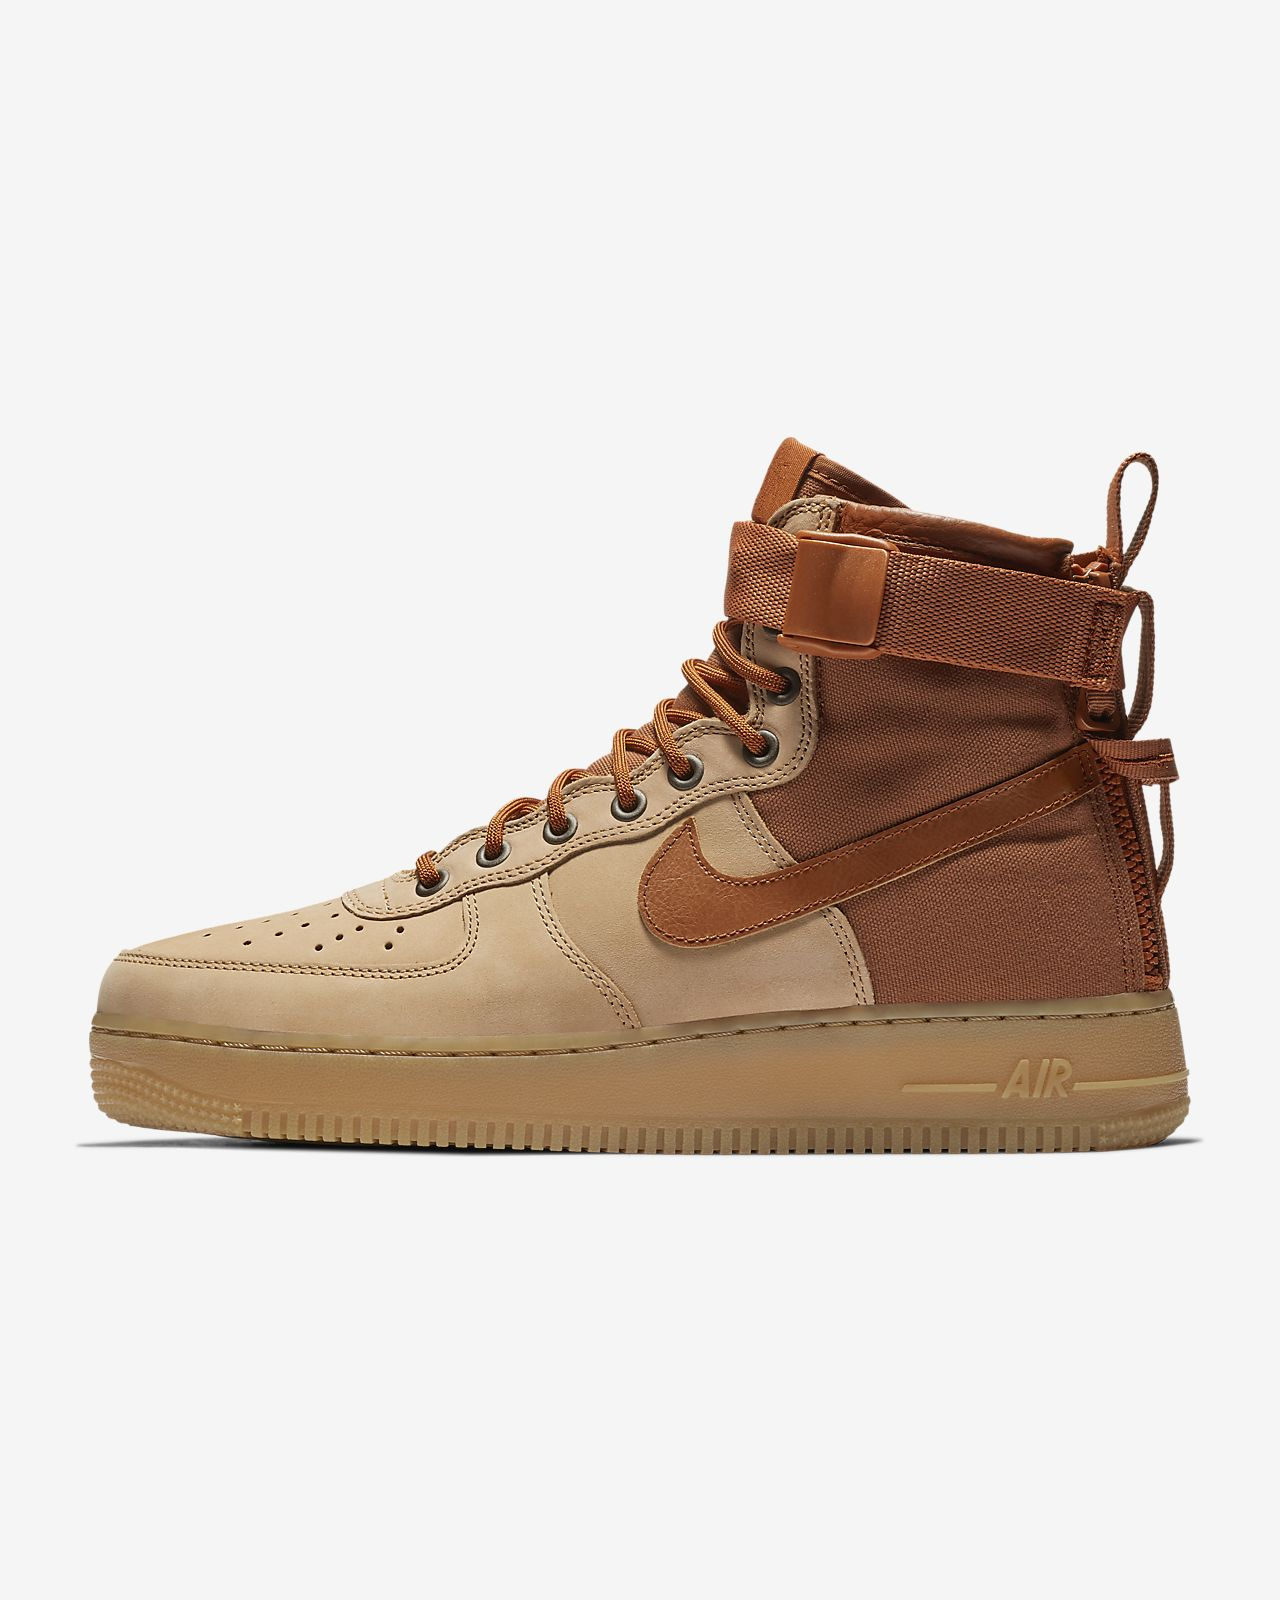 Nike SF Air Force 1 Mid Premium Men's Shoe